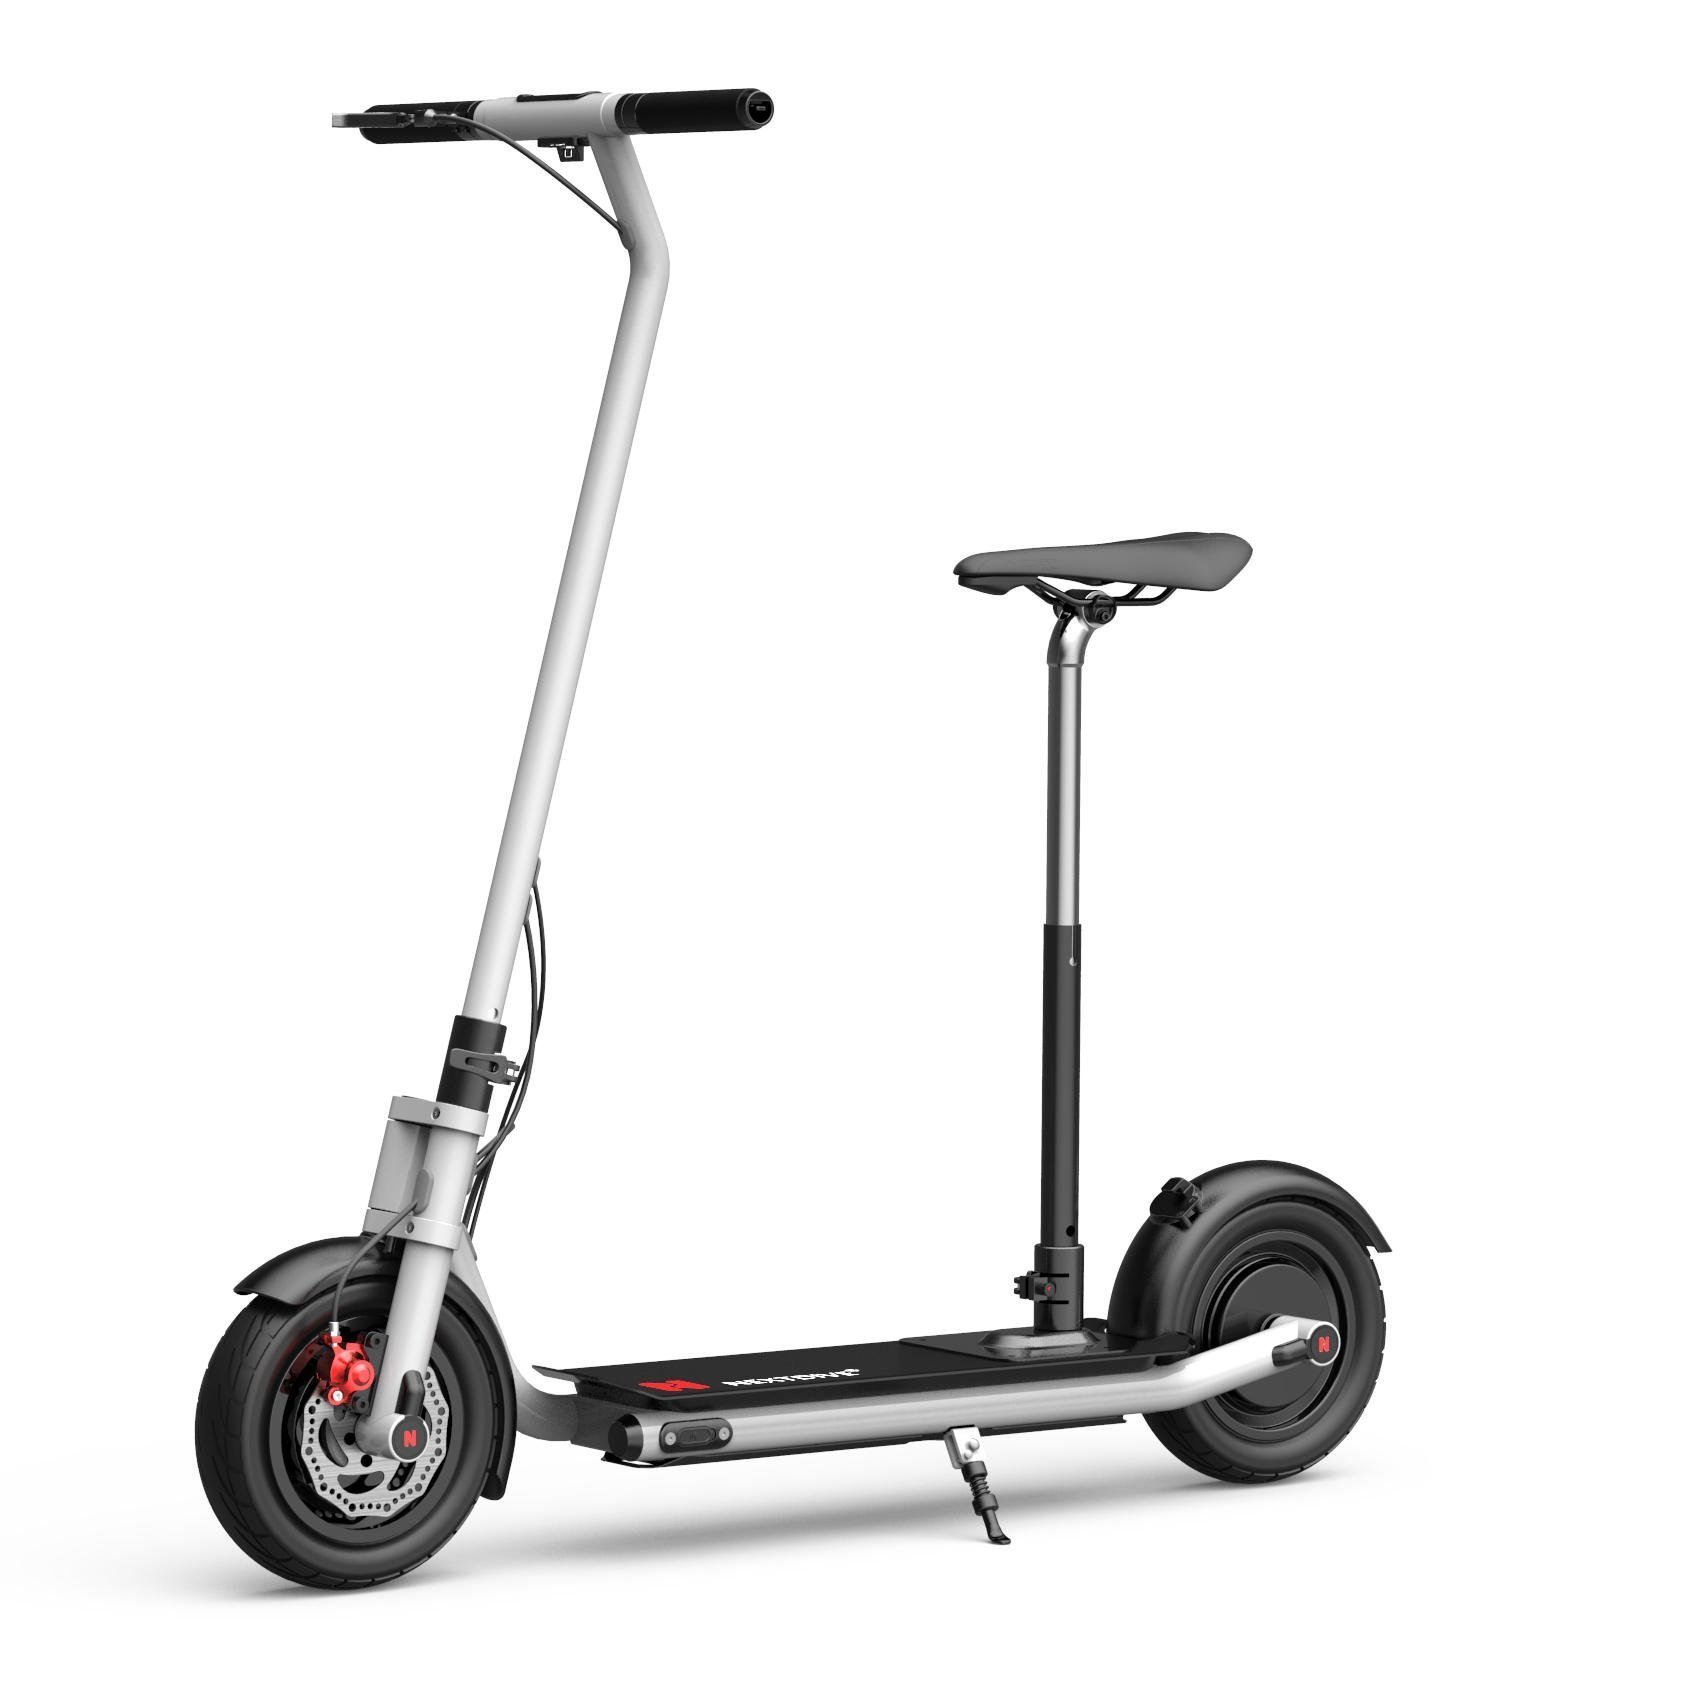 NEXTDRIVE N-7 300W 36V 10.4Ah Foldable Electric Scooter With Saddle For Adults/Kids 32 Km/h Max Speed 18-36 Km Mileage - White